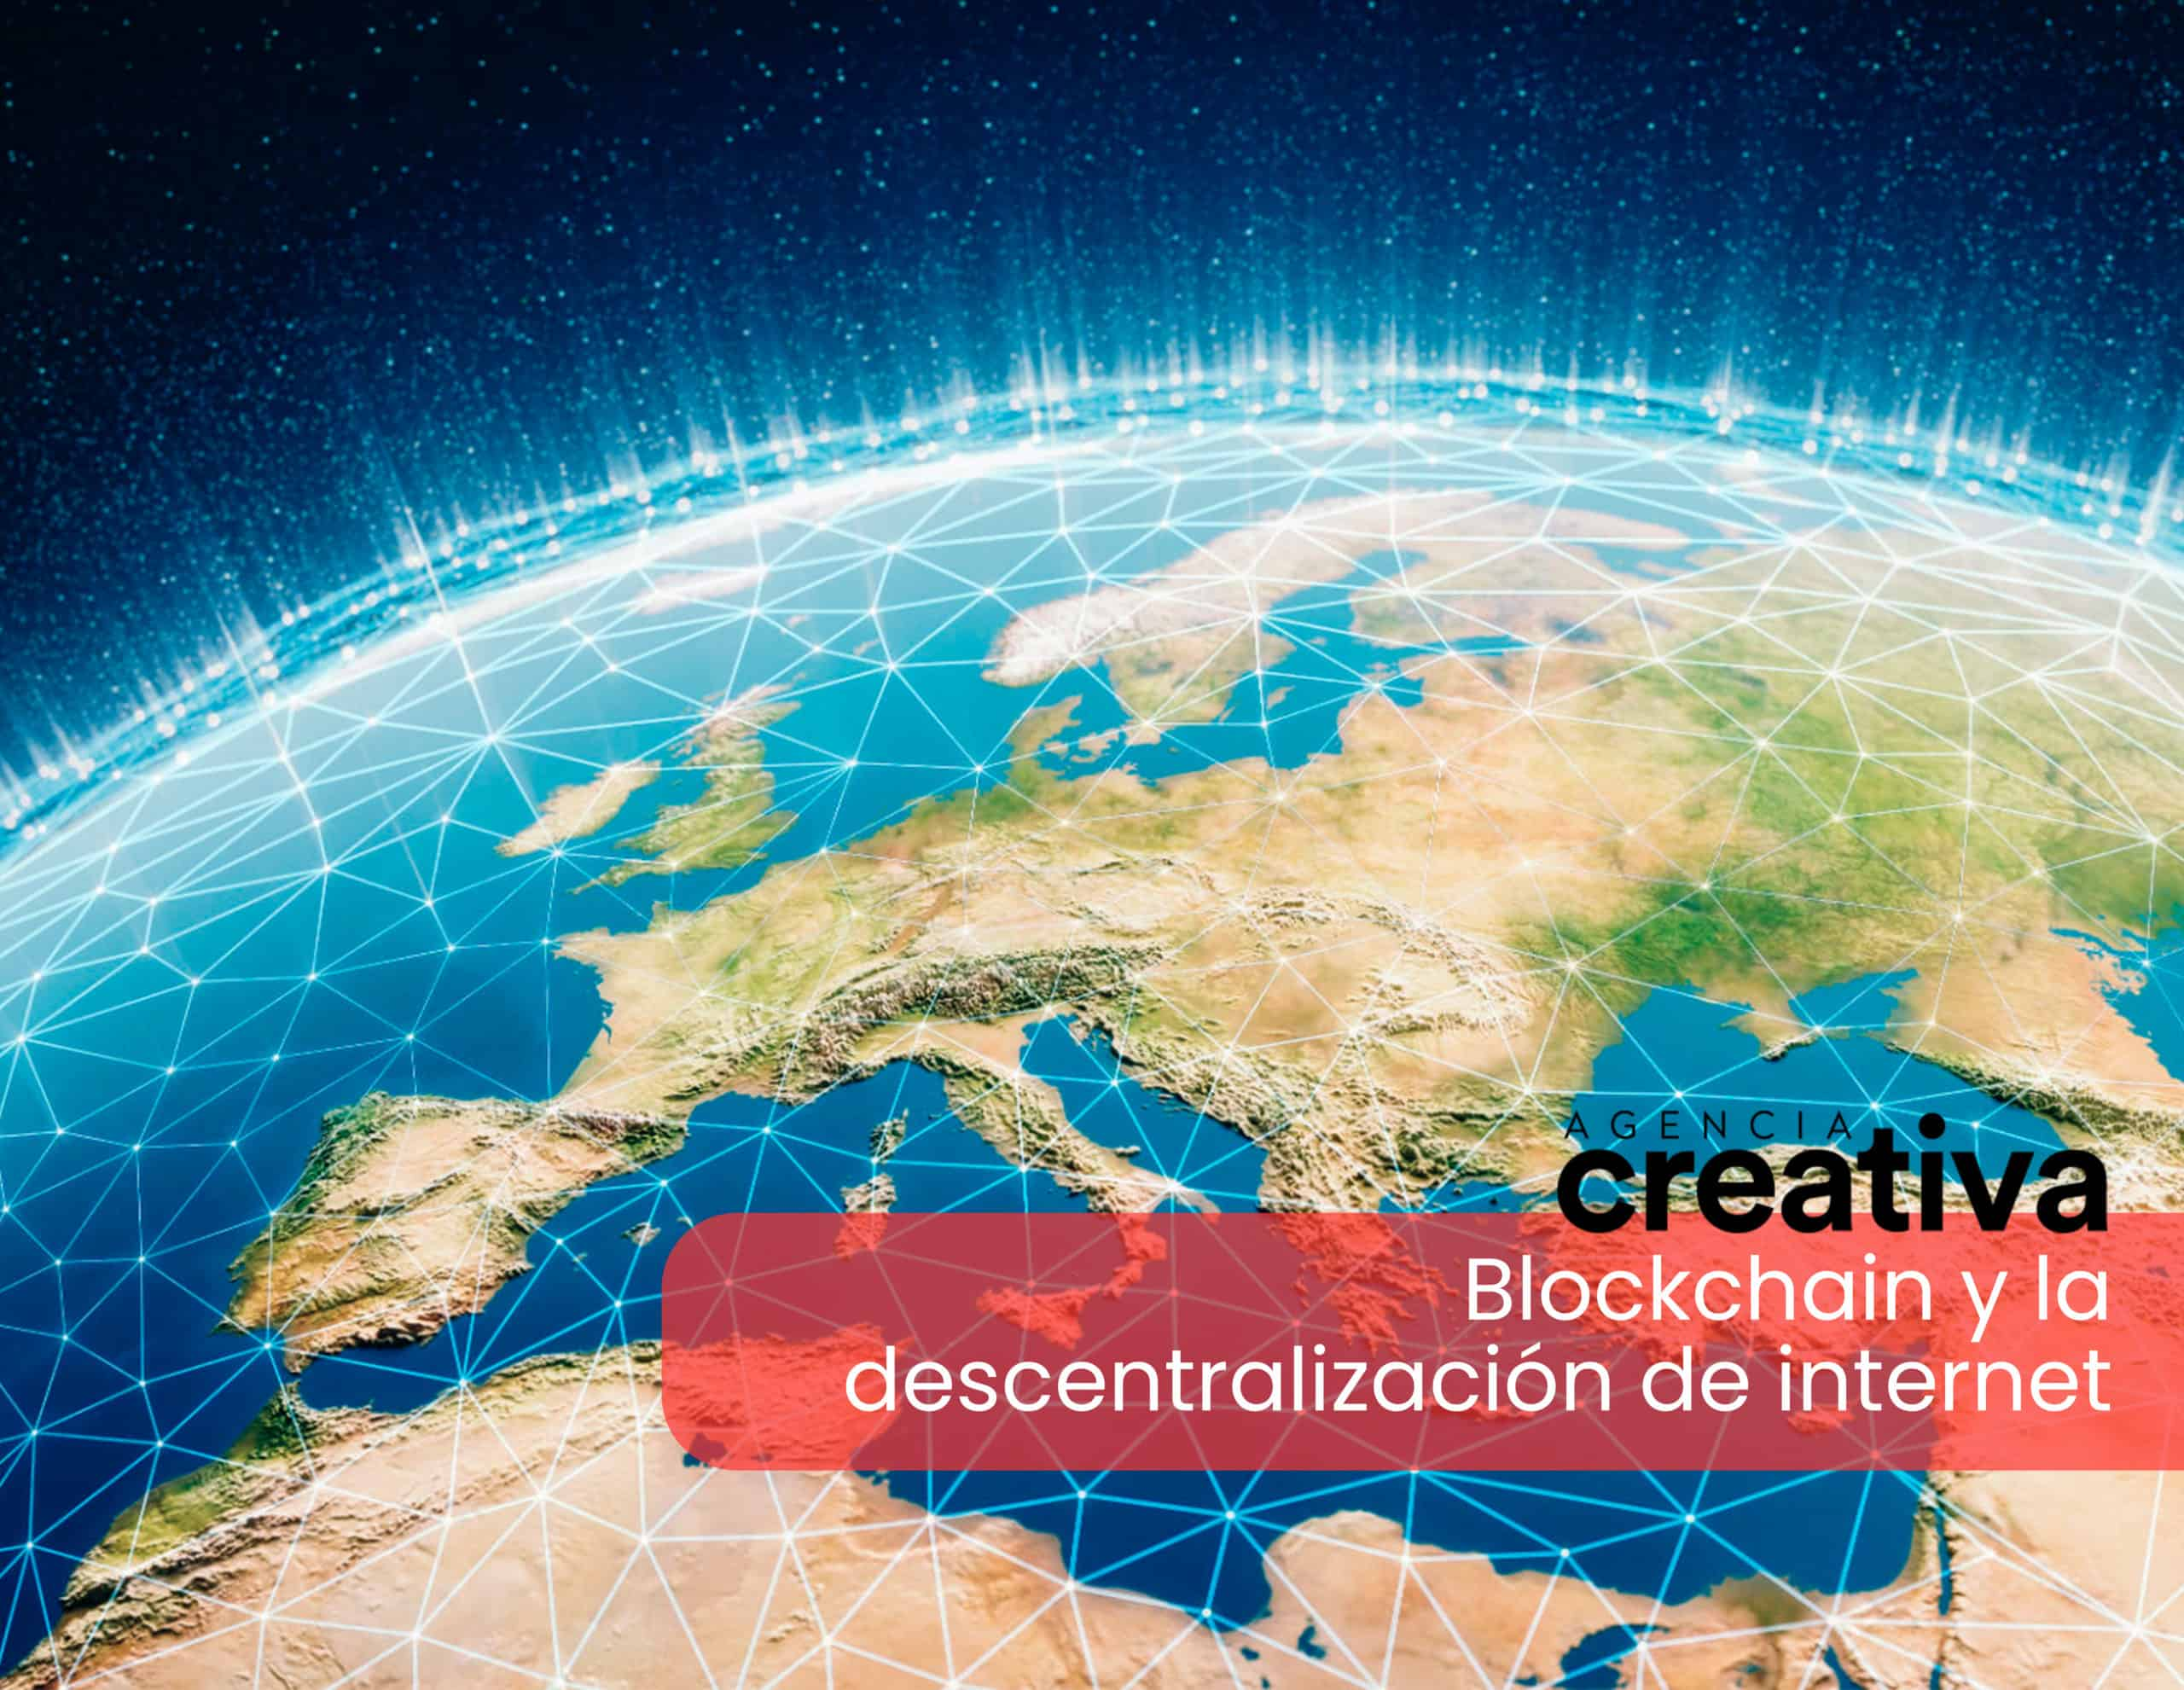 Blockchain y la descentralización de internet